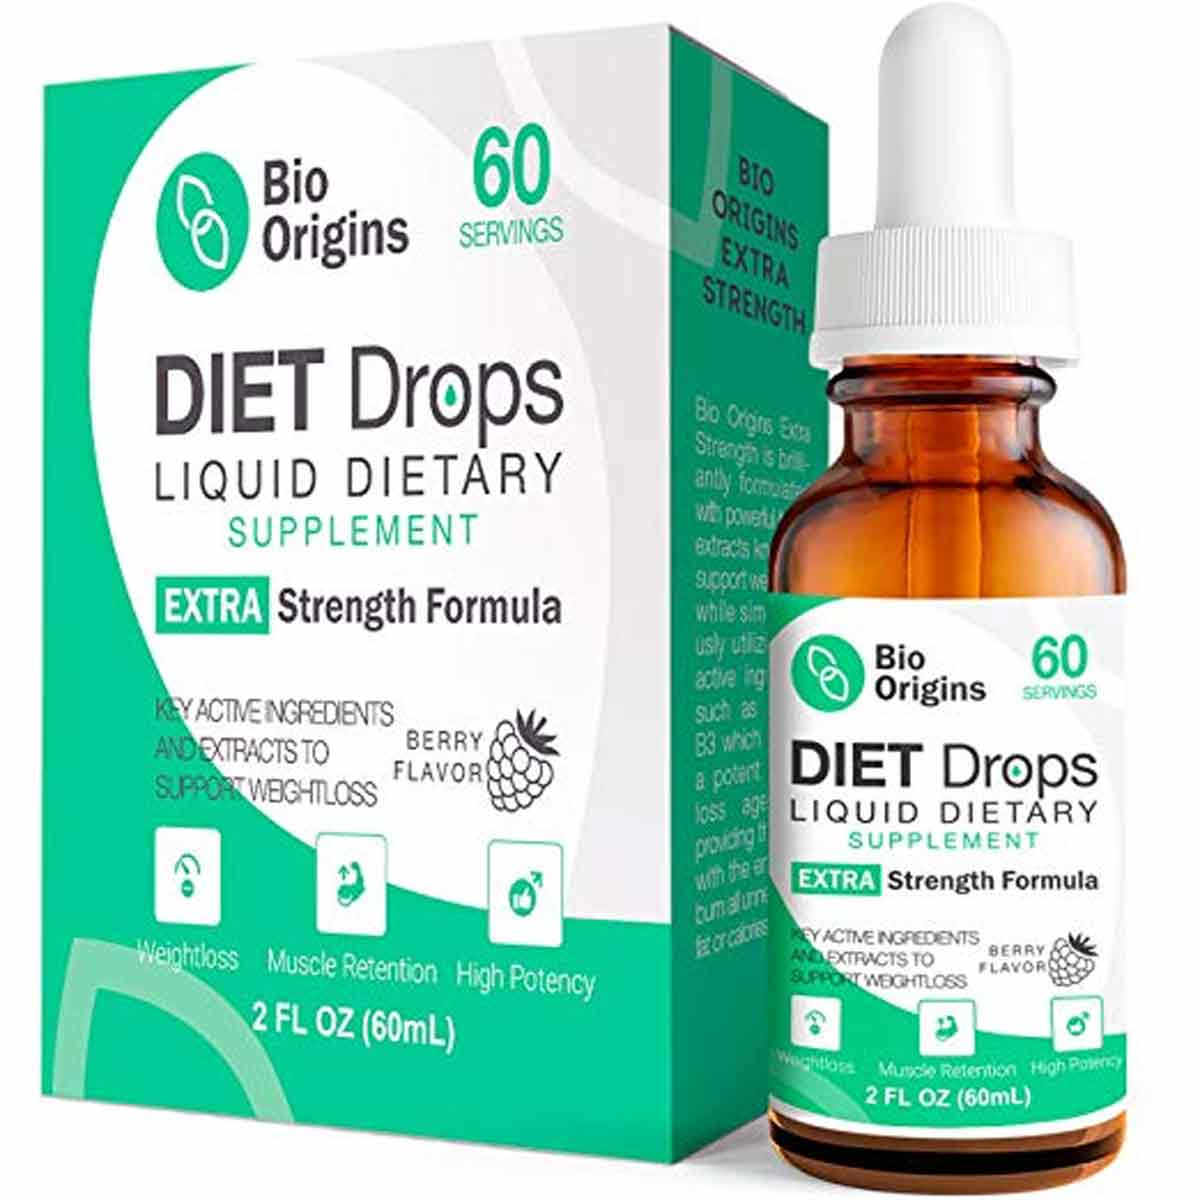 Bio Origins Diet Drops